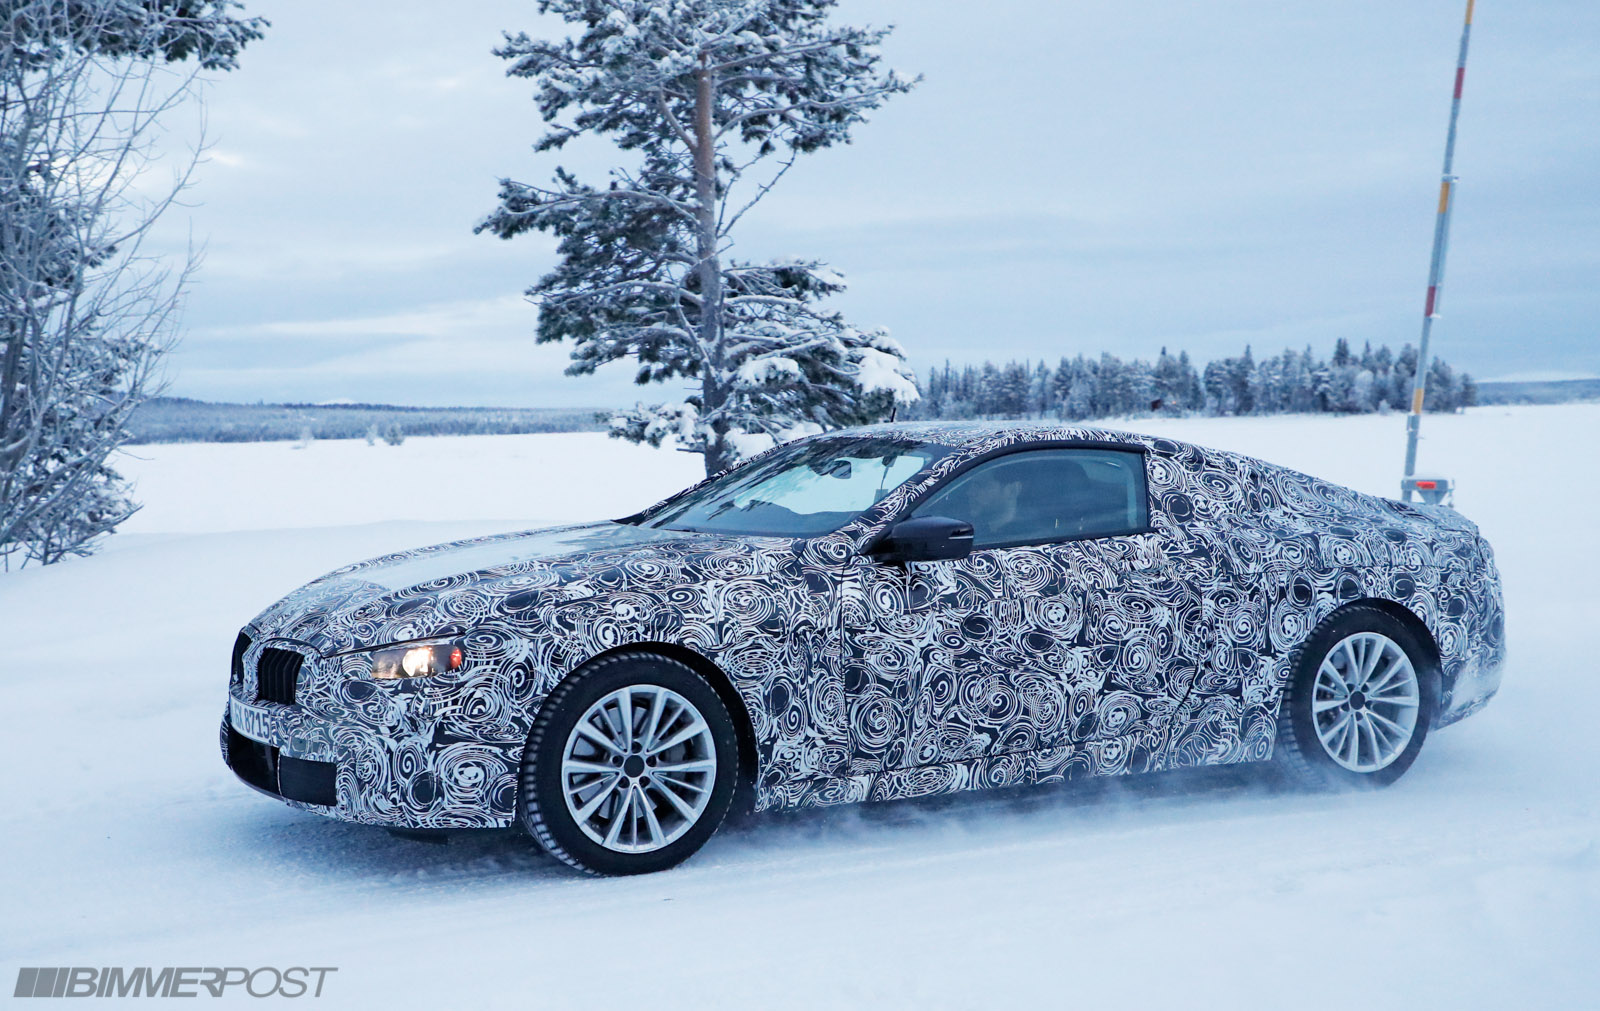 Vision Z Concept New Bmw Sports Car Concept Spotted